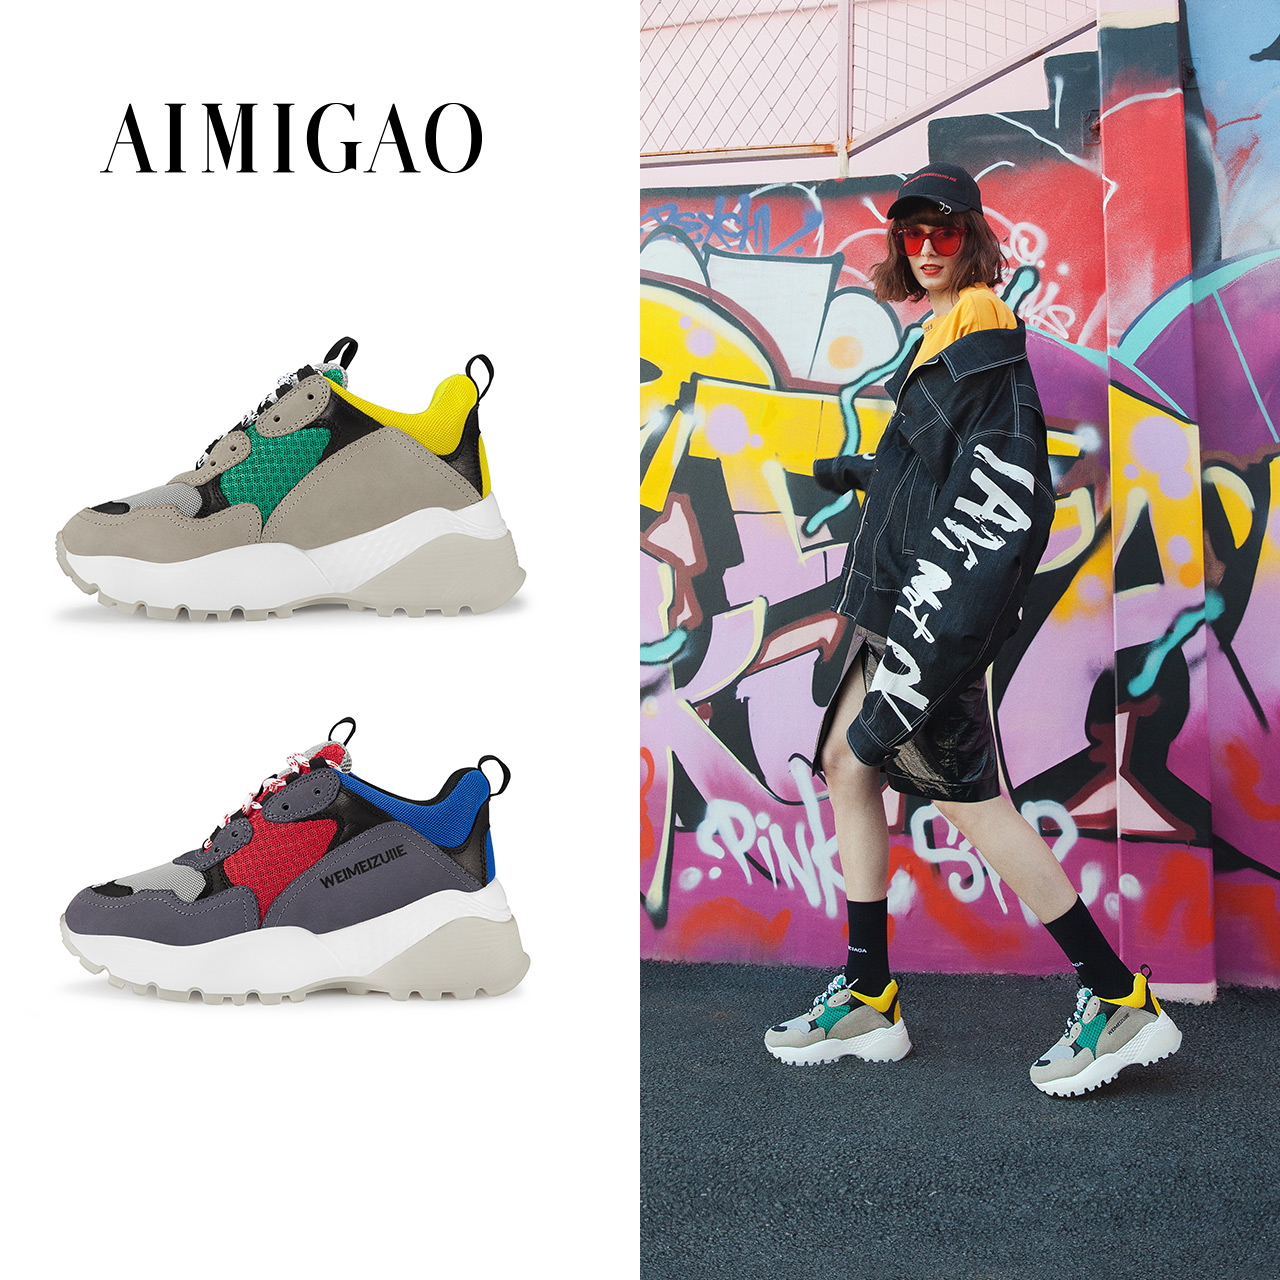 AIMIGAO Superstar Sneakers Women Leisure Shoes Mixed Color Street Style Women Breathable Casual Flat Platform Shoes 2018